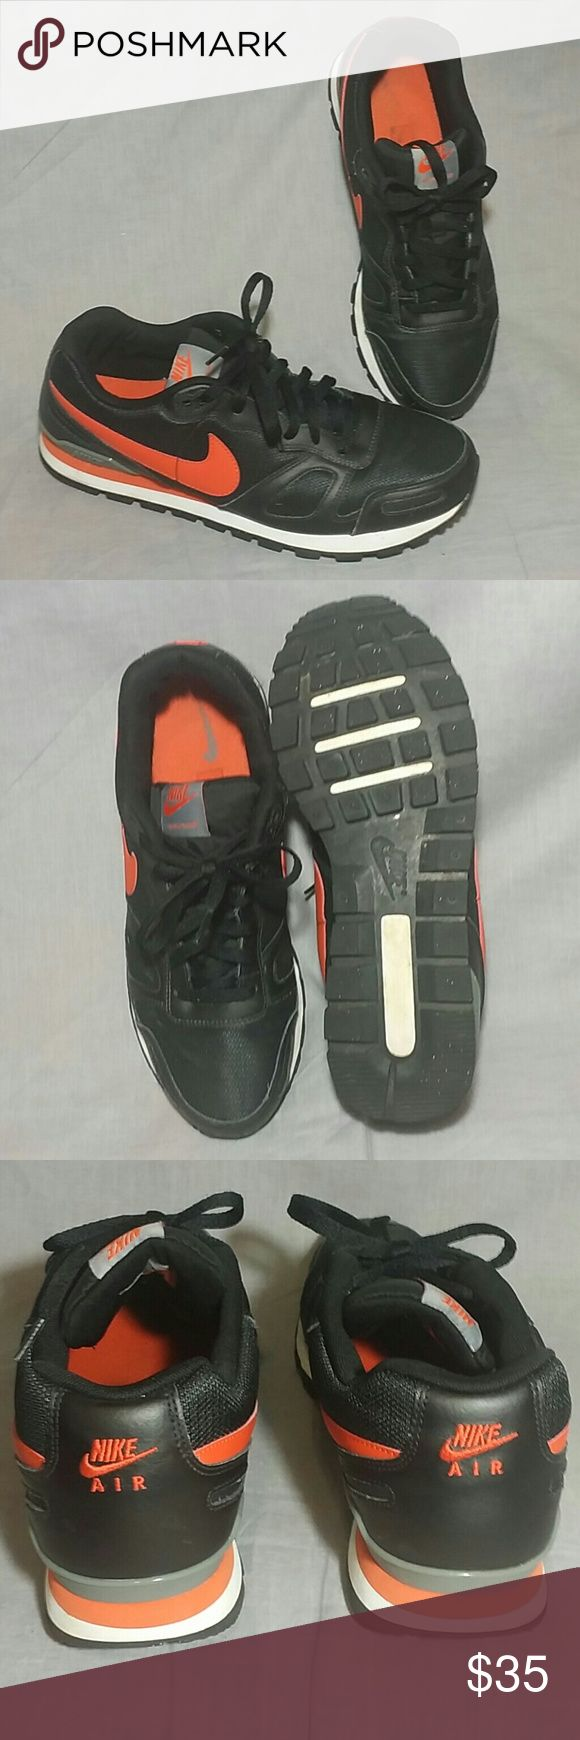 Men's NIKE AIR WAFFLE TRAINER Shoes Black 11.5 M Men's Nike Air waffle Trainer Shoes Black Orange Size 11.5 M Lace ups , item is in a good condition. Nike Shoes Sneakers